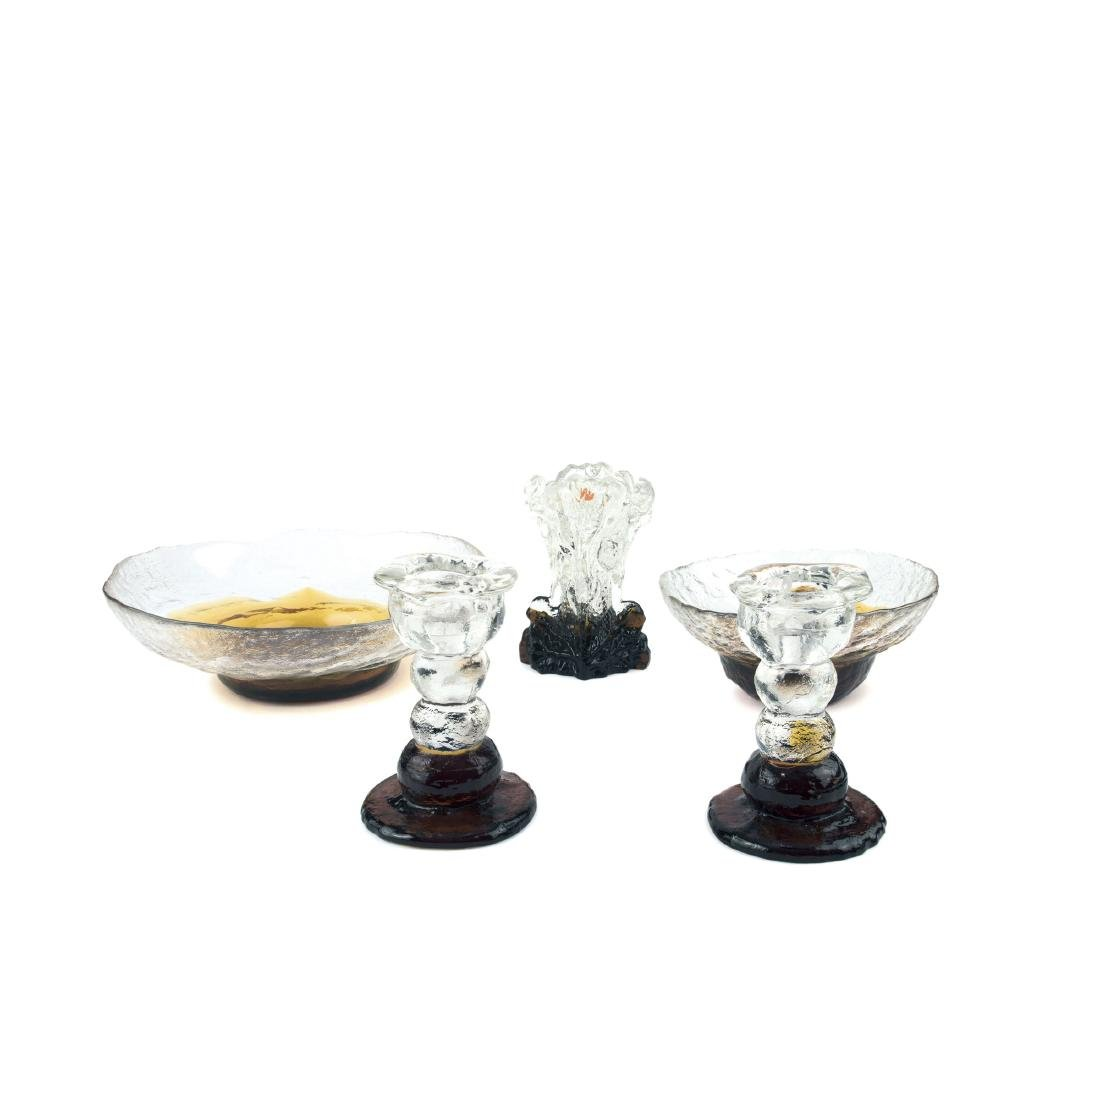 Two candlesticks, two bowls, one vase, 1970s